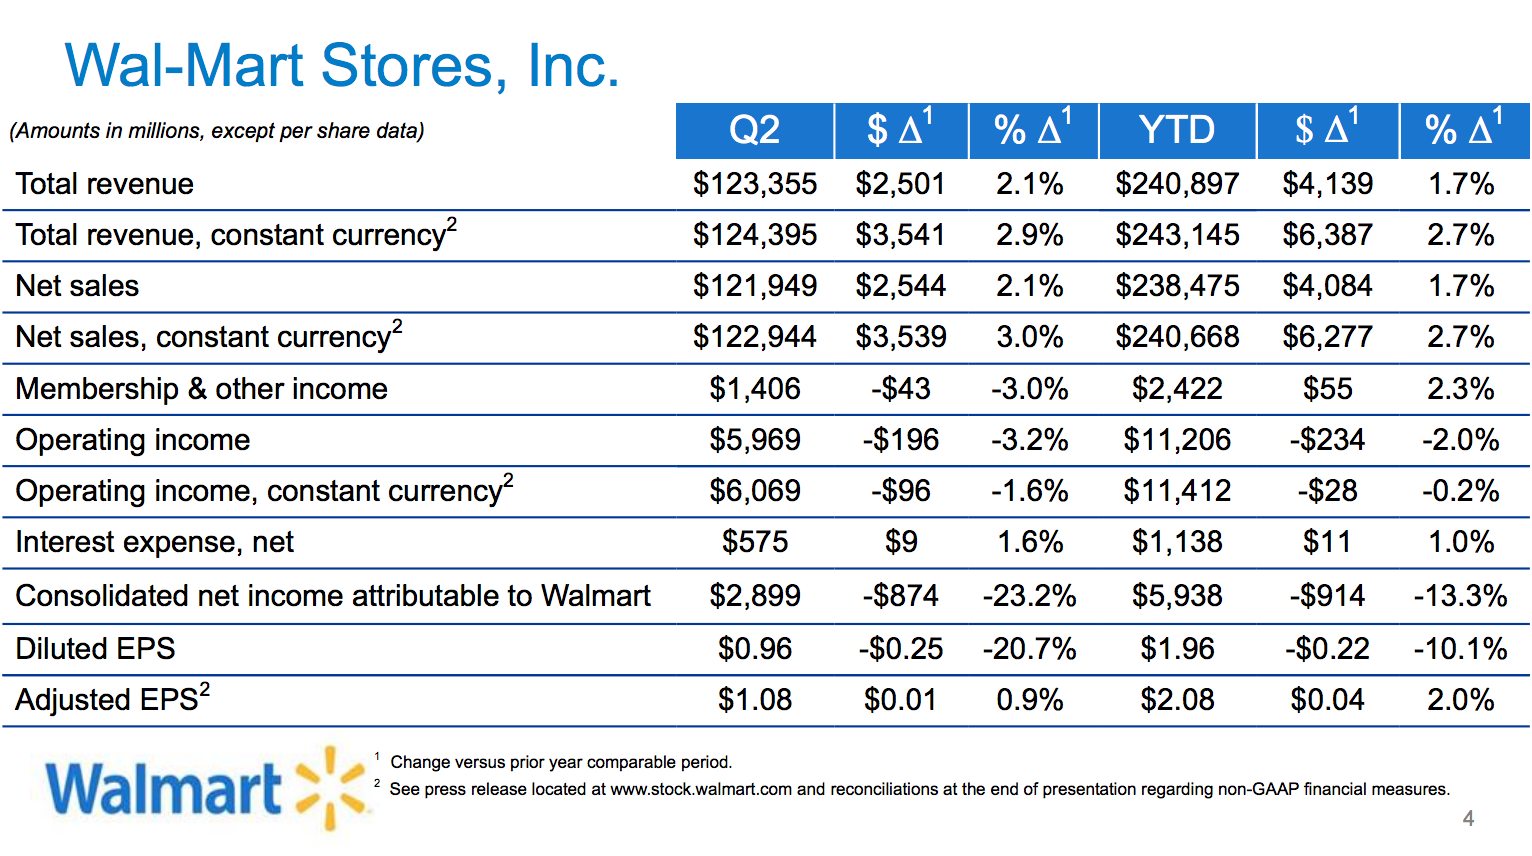 additional details about wal marts financial performance in the most recent quarter can be seen below